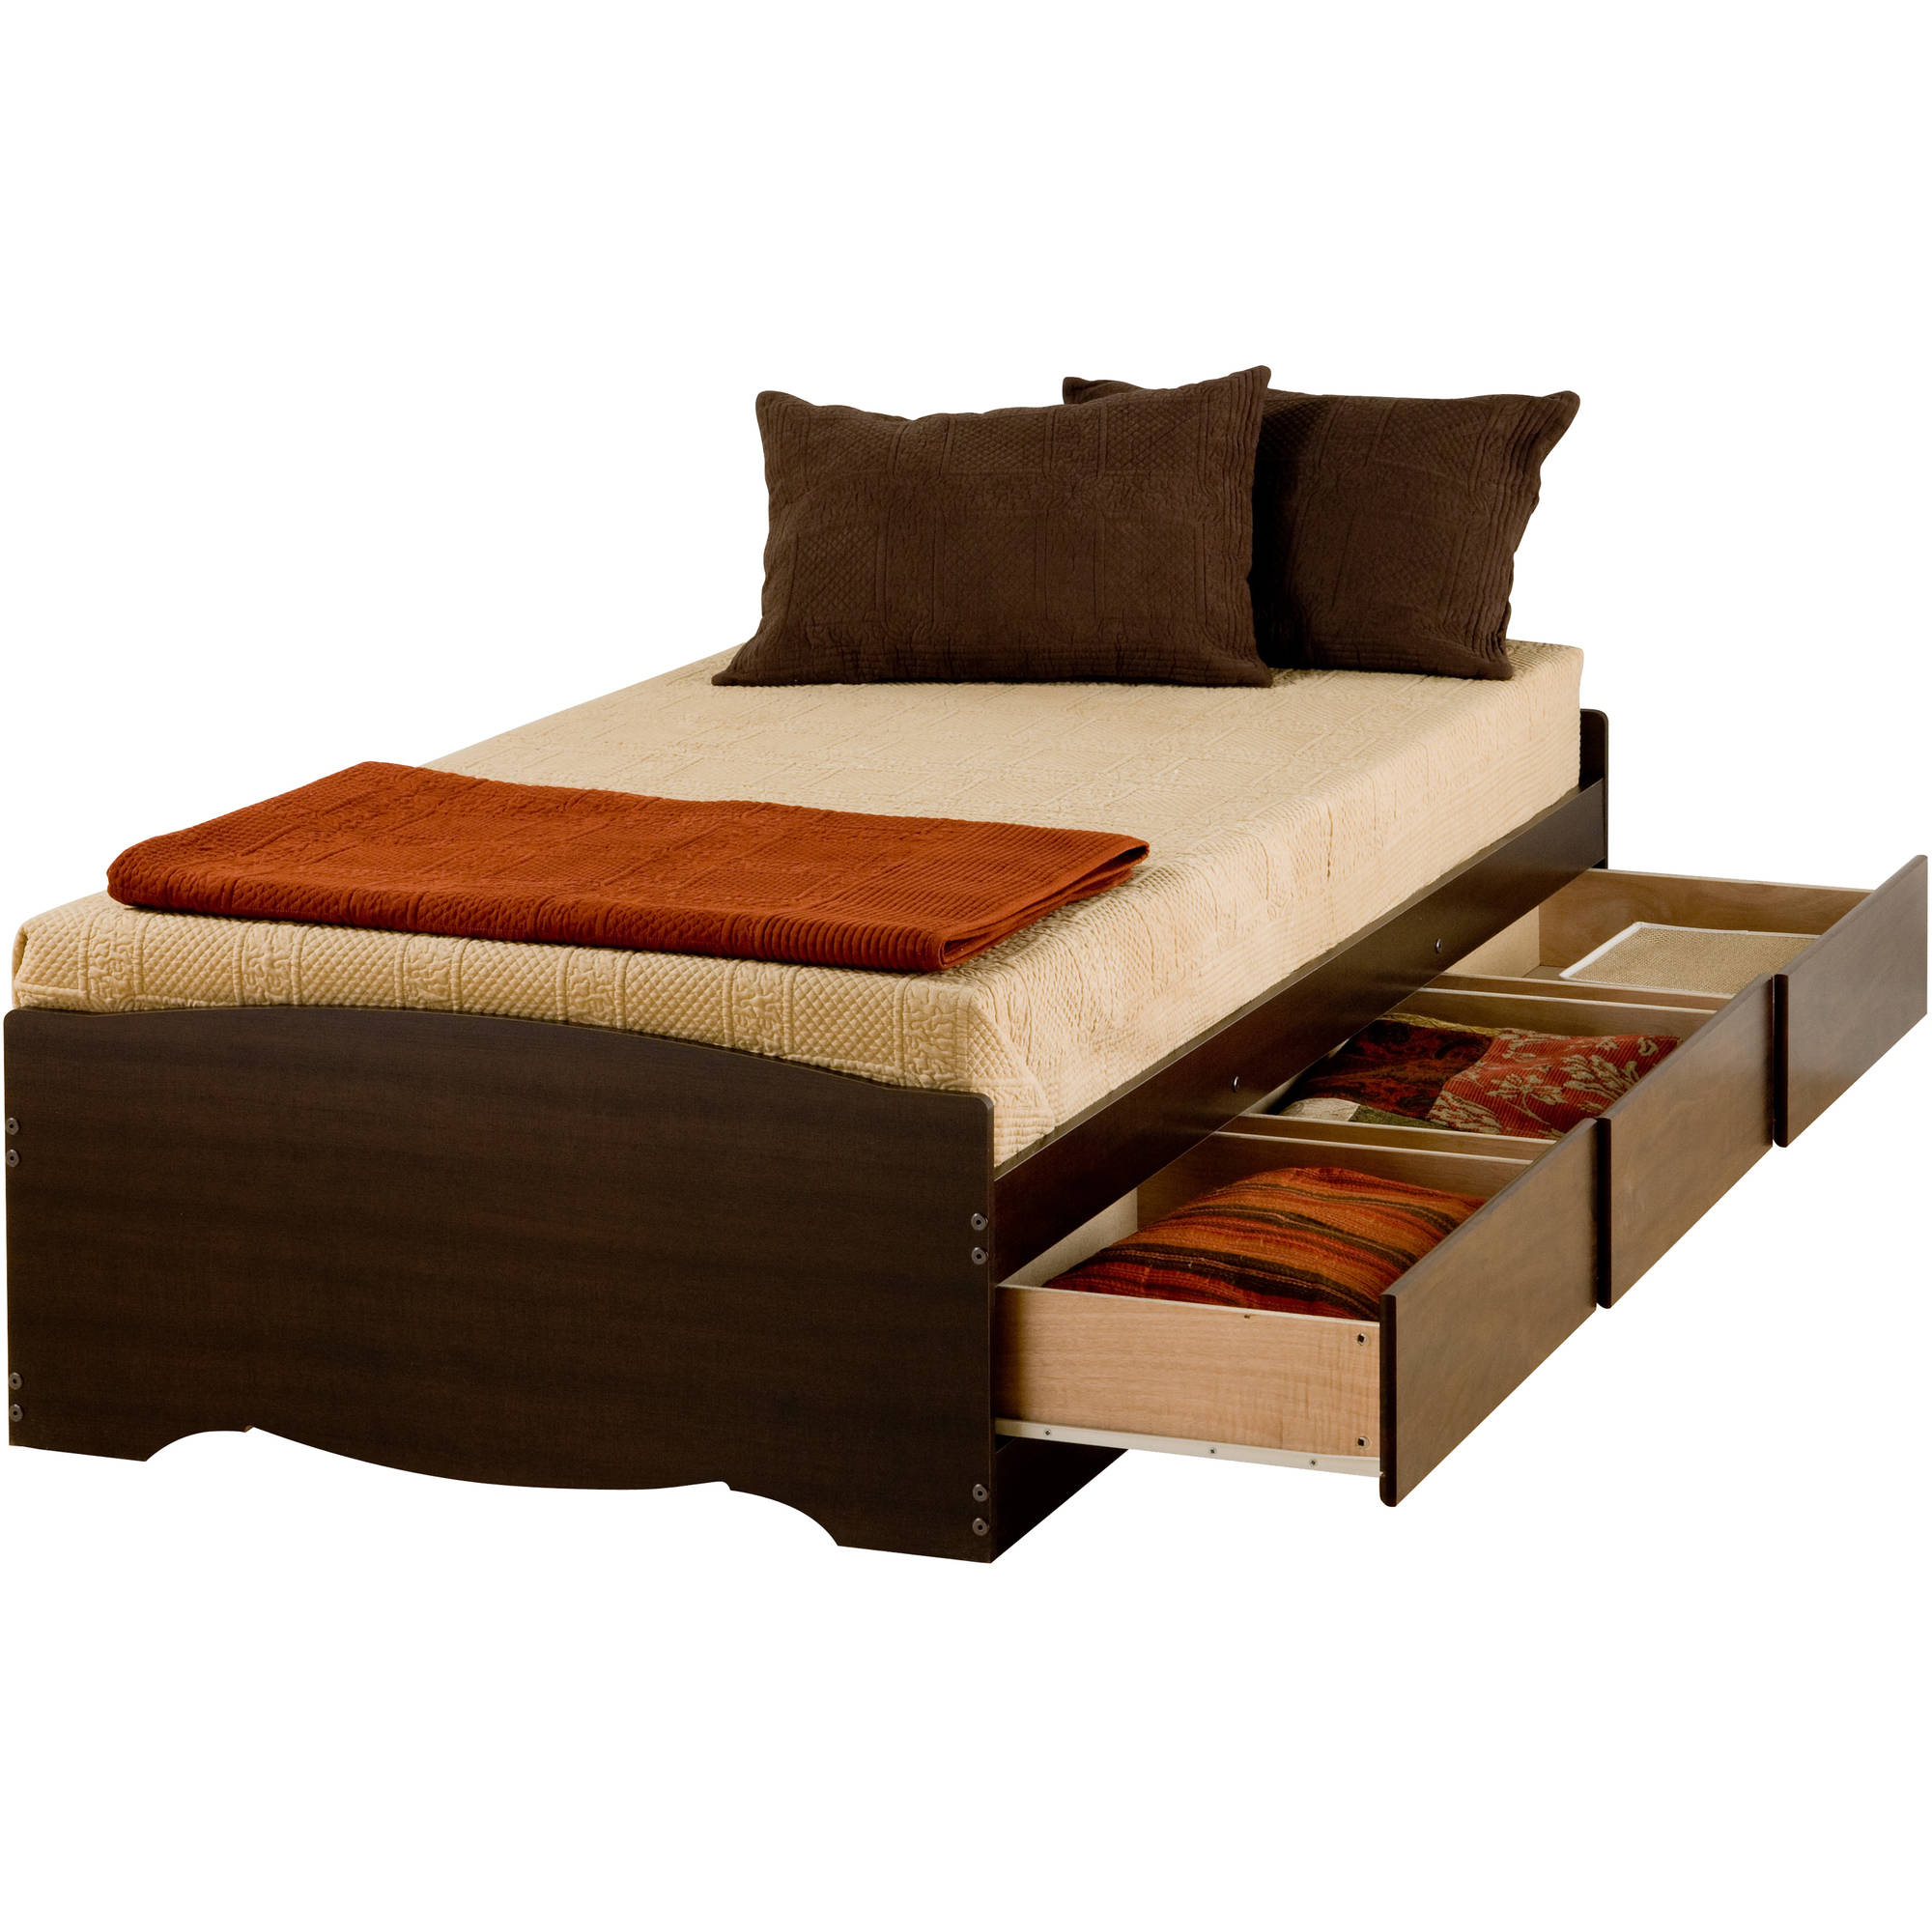 Twin XL Mates Platform Storage Bed, 3-Drawers -Component